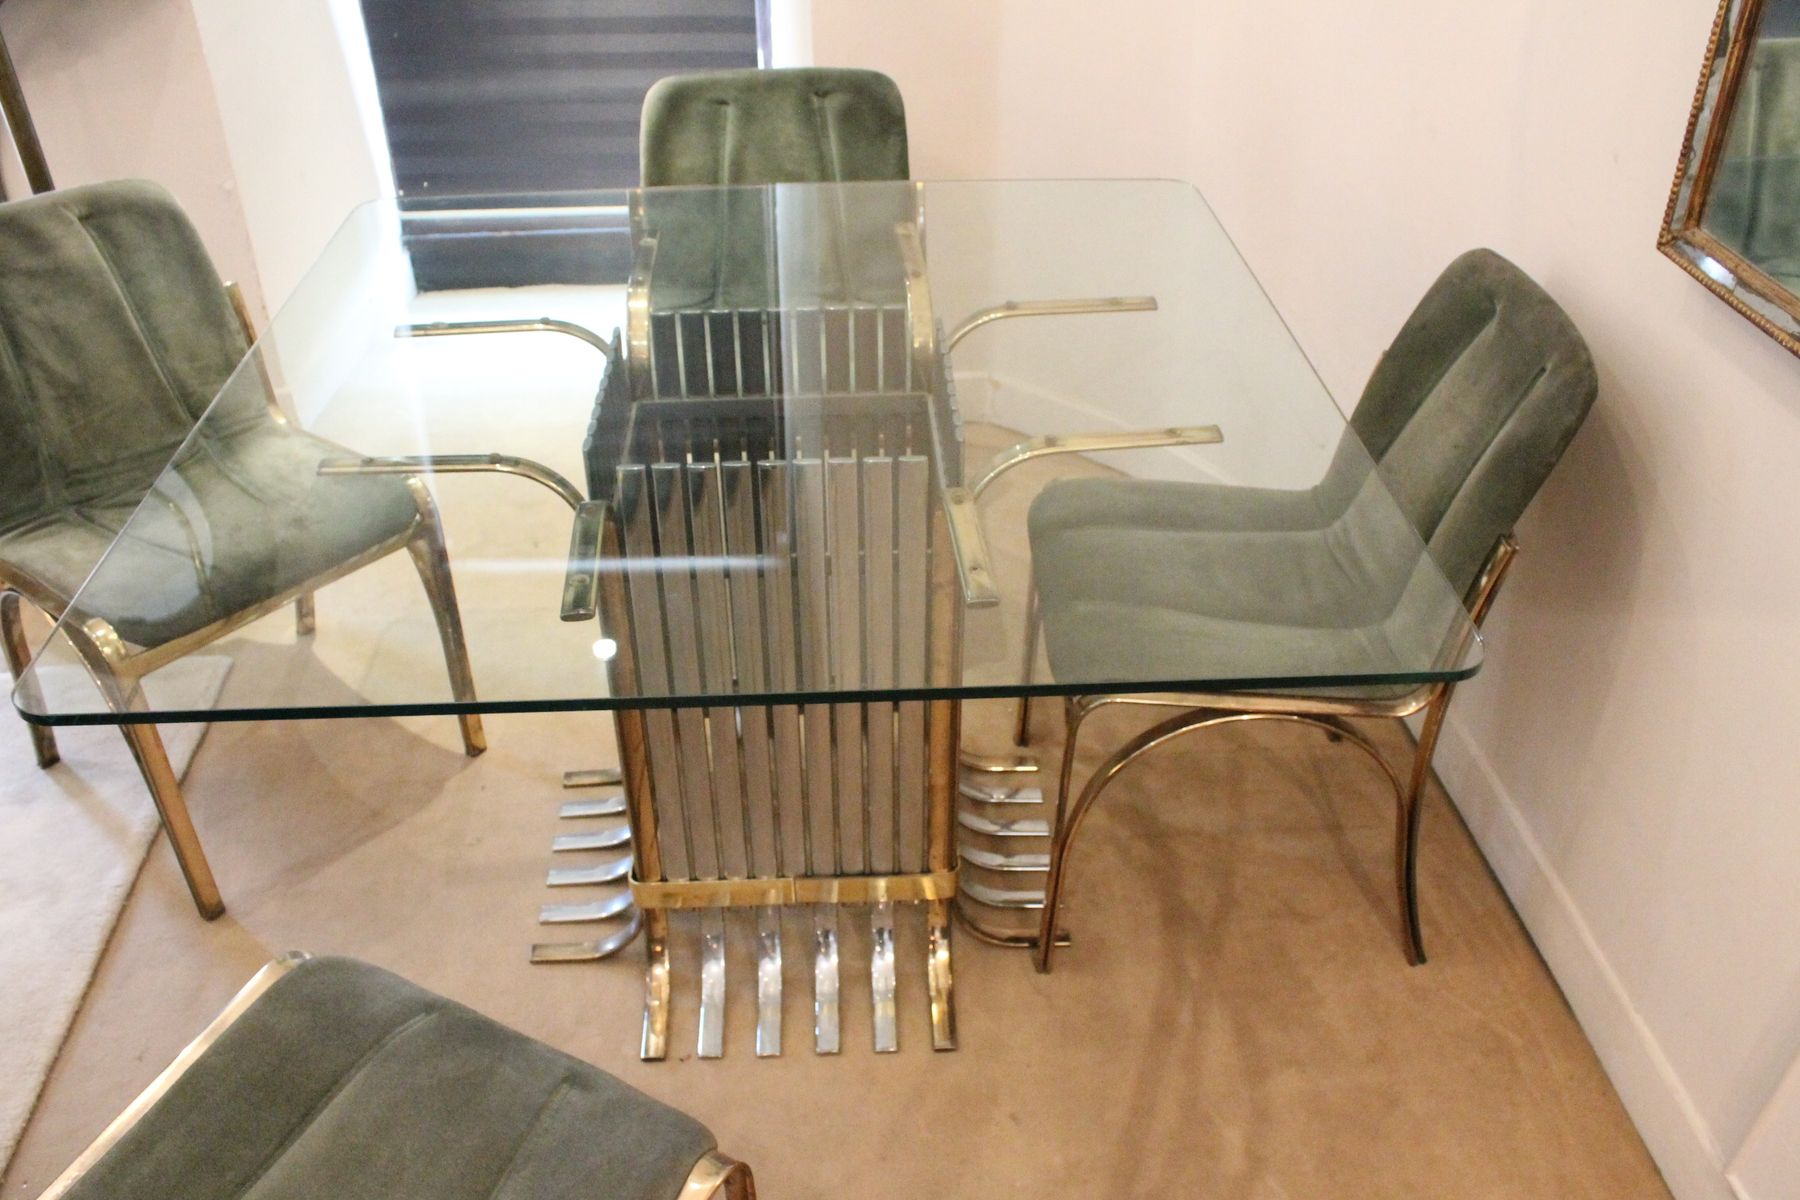 Italian Glass Dining Table with Four Chairs 1970 for sale  : italian glass dining table with four chairs 1970 25 from www.pamono.co.uk size 1800 x 1200 jpeg 173kB